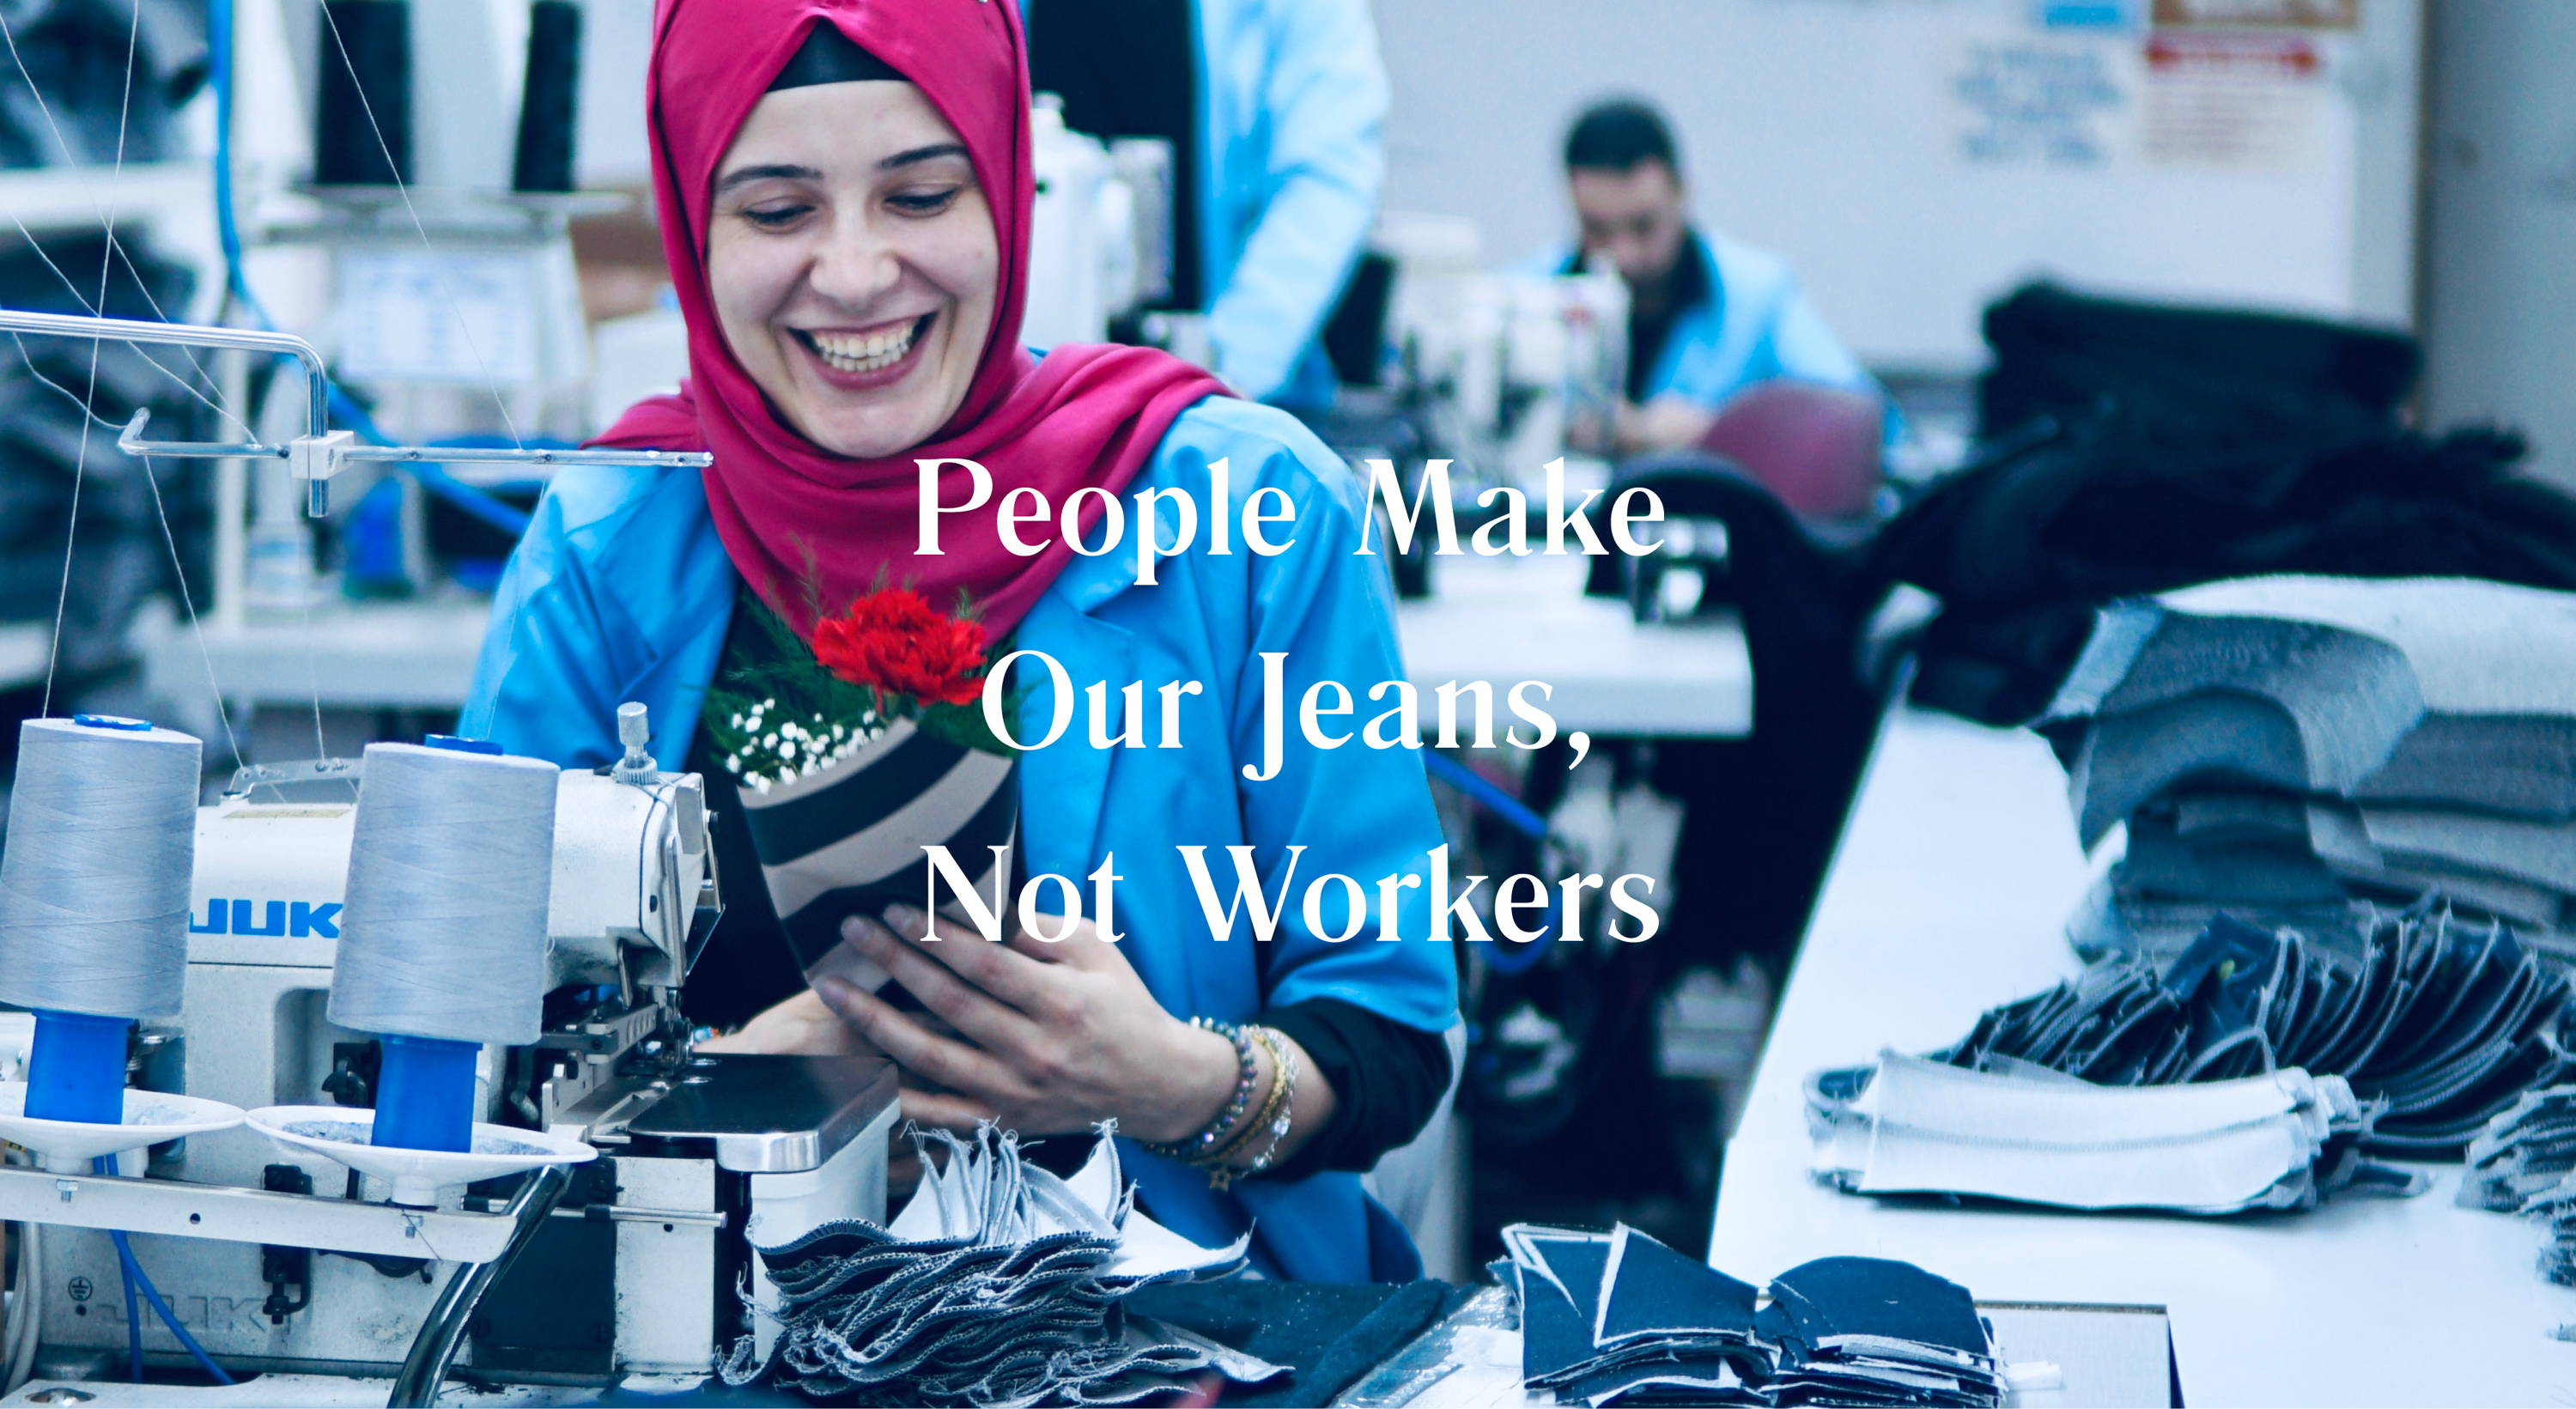 People Make Our Jeans - Not Workers